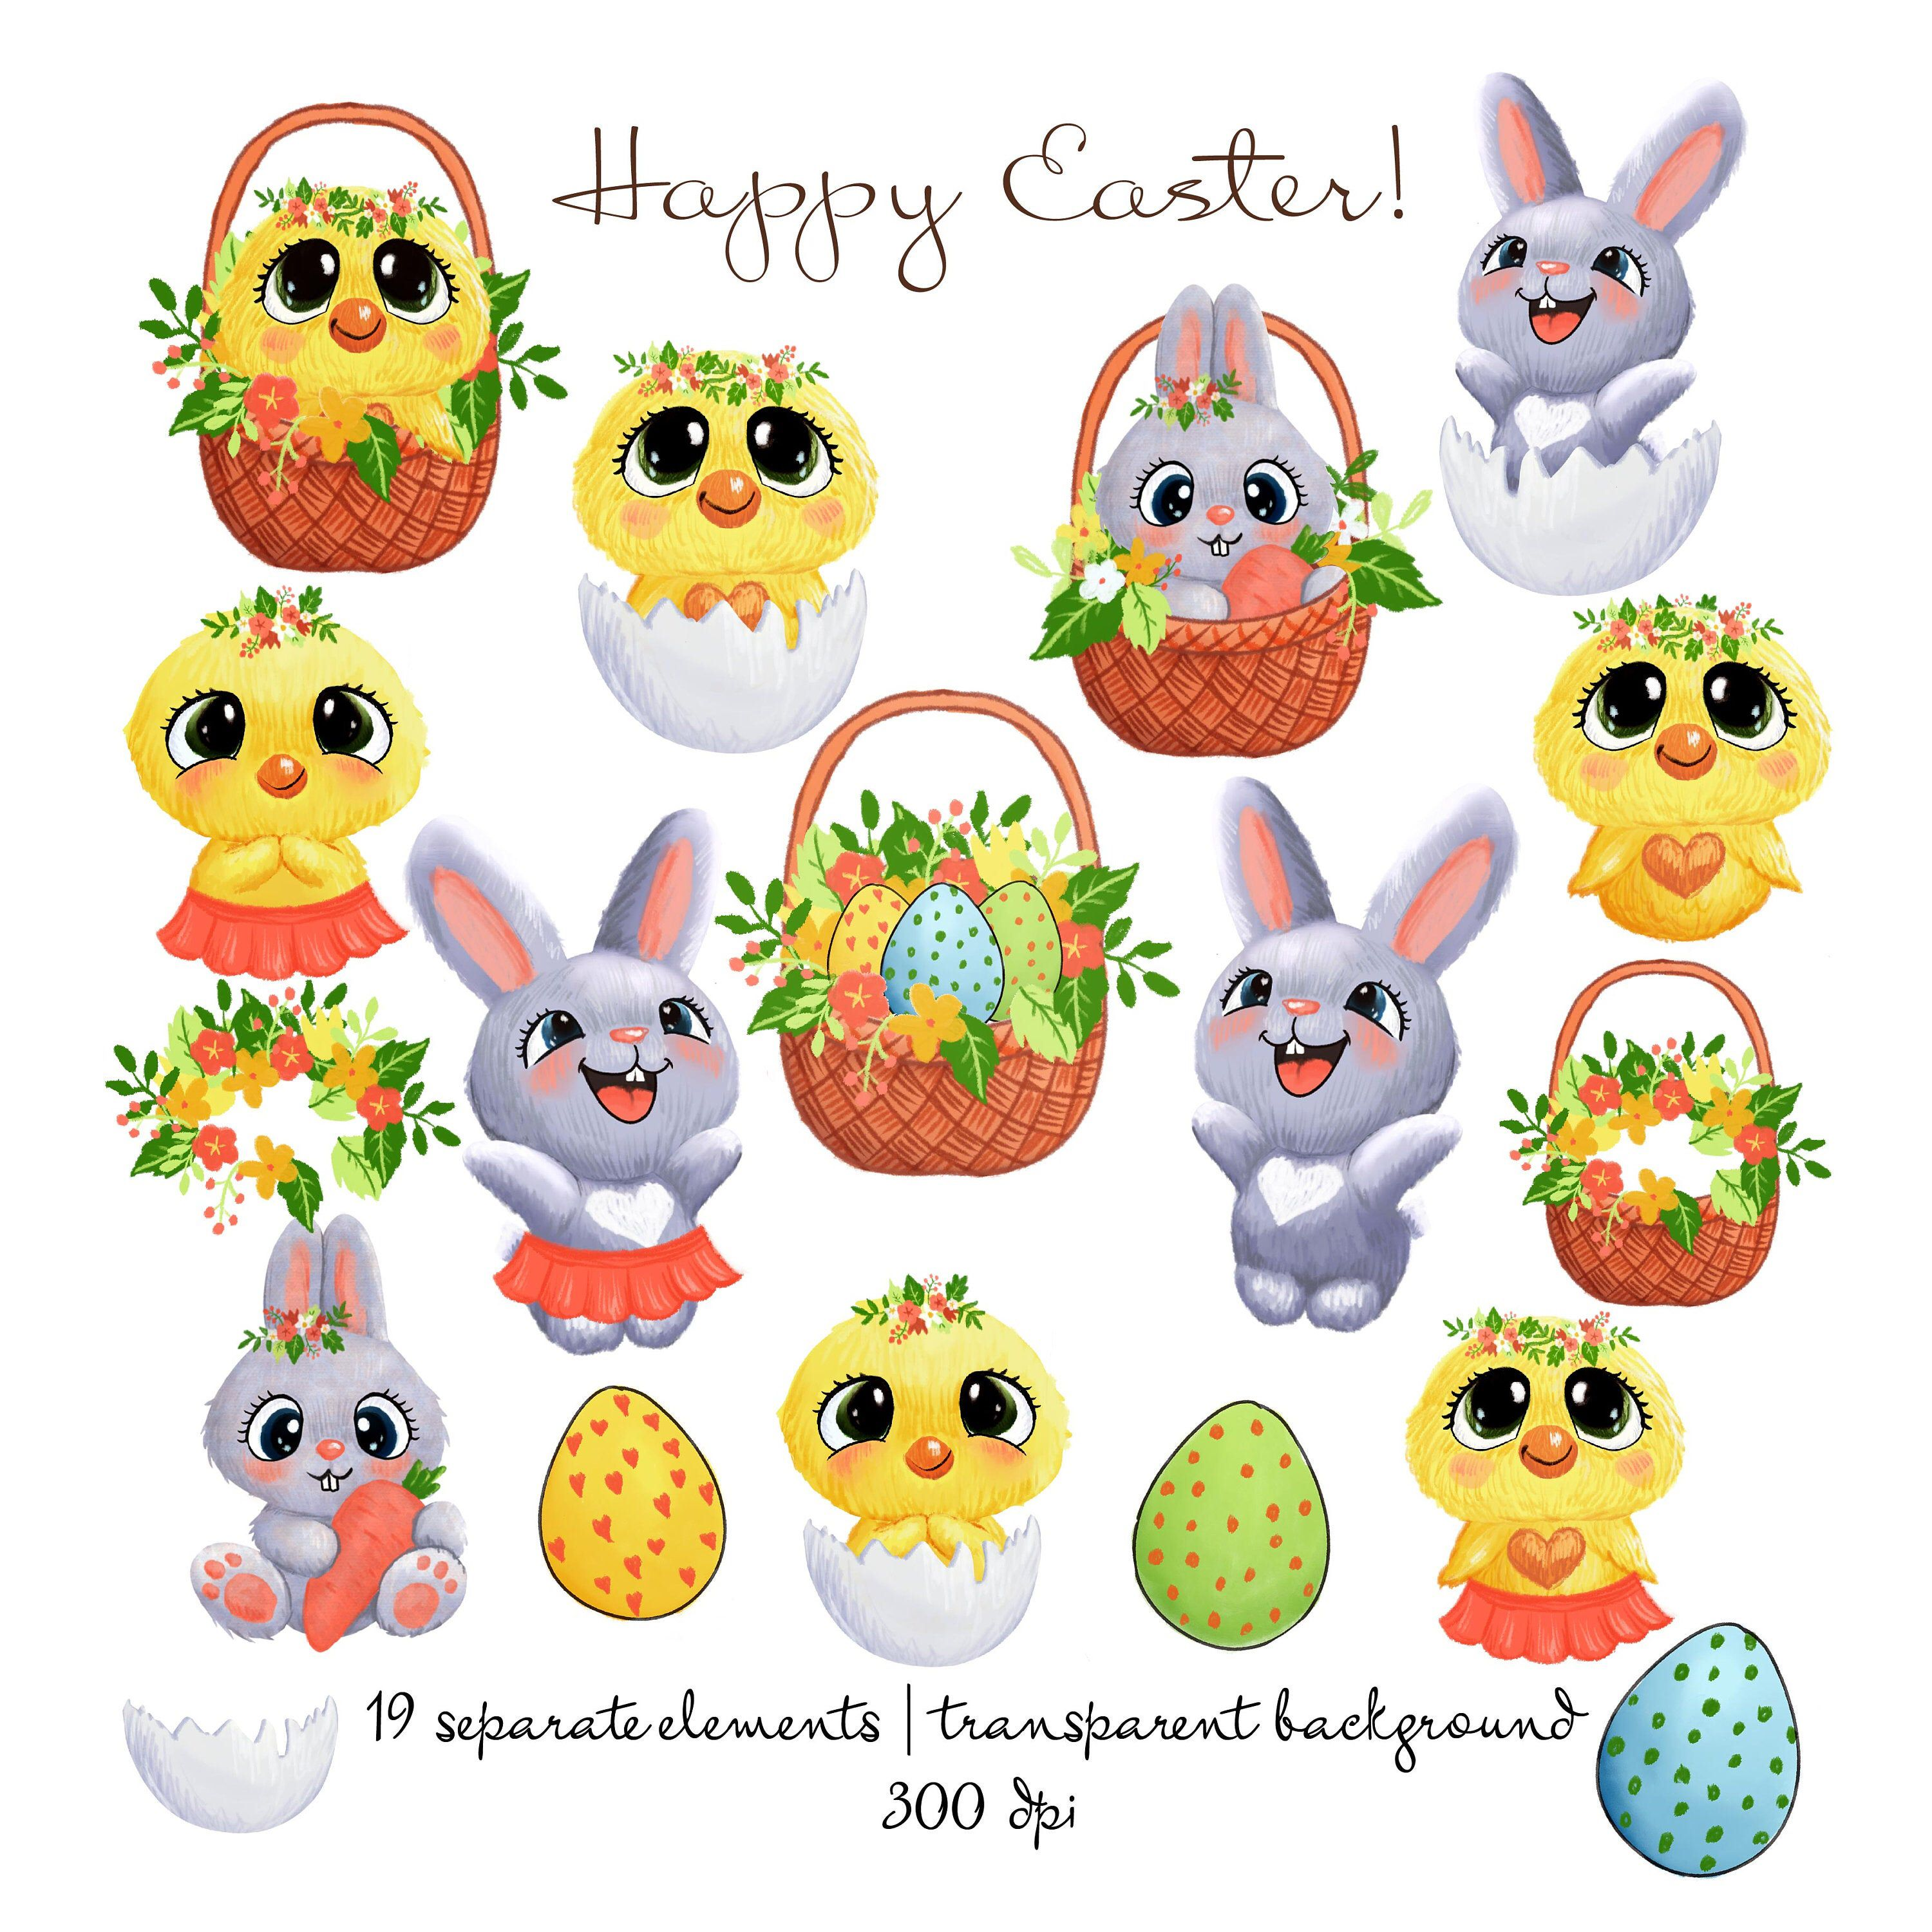 Easter Clipart Cute Easter Clipart Woodland Rabbit Bunny Etsy Easter Stickers Cute Animal Clipart Easter Clipart